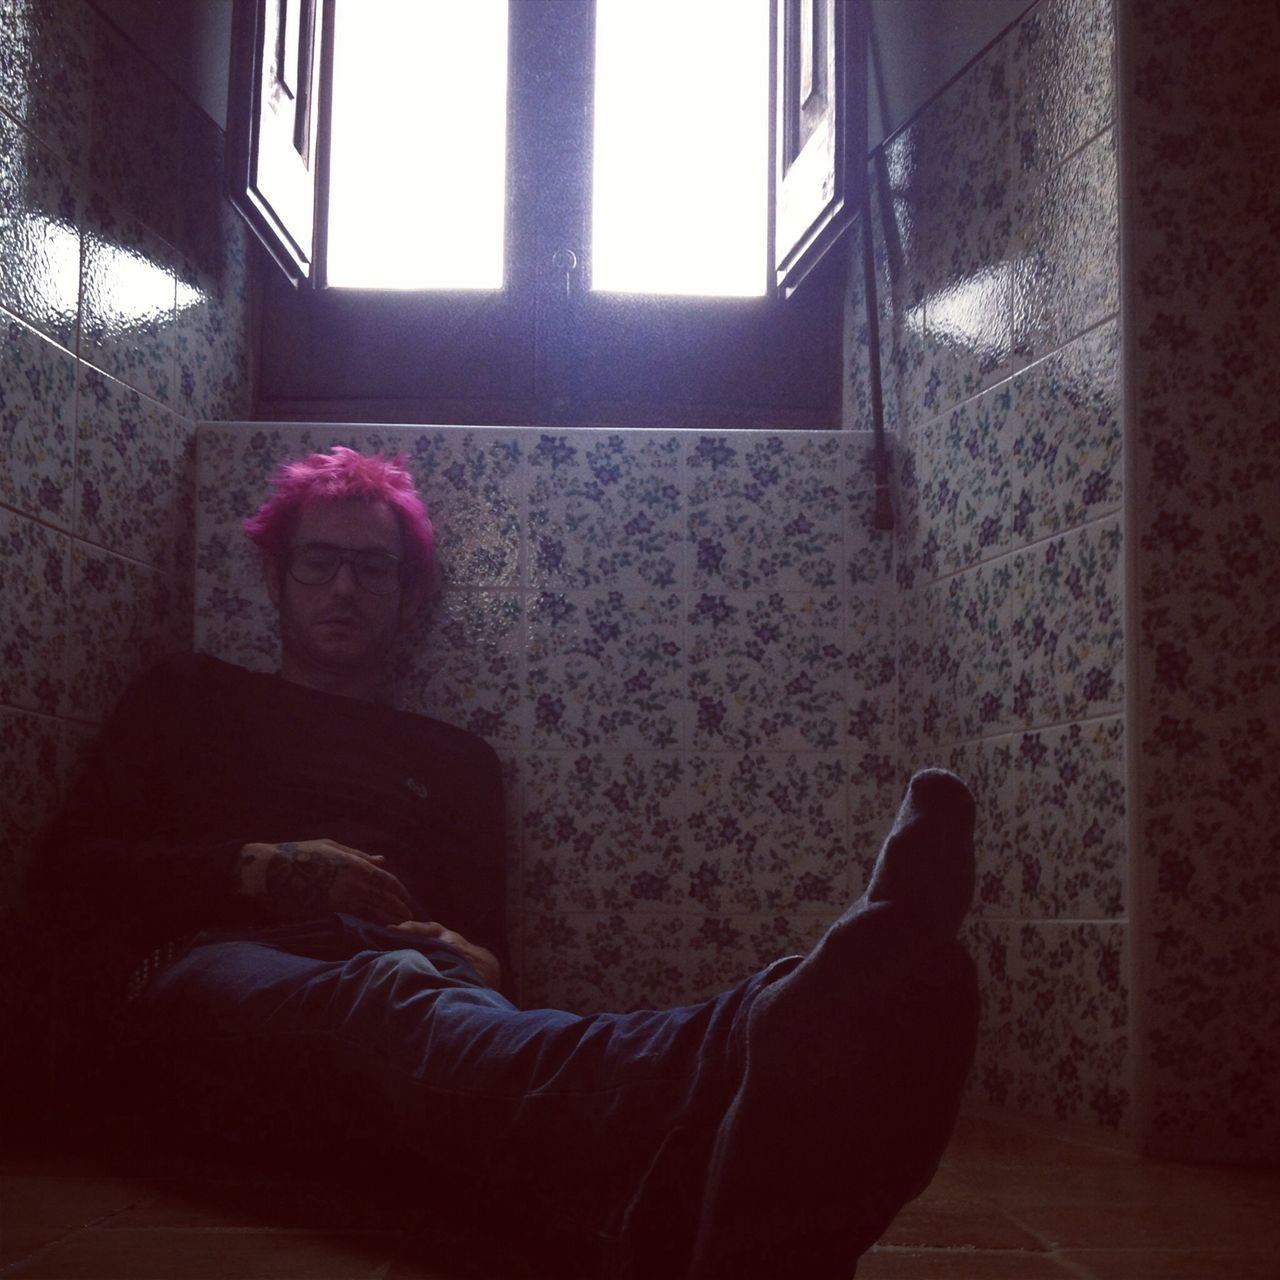 Man sitting on tiled floor at home